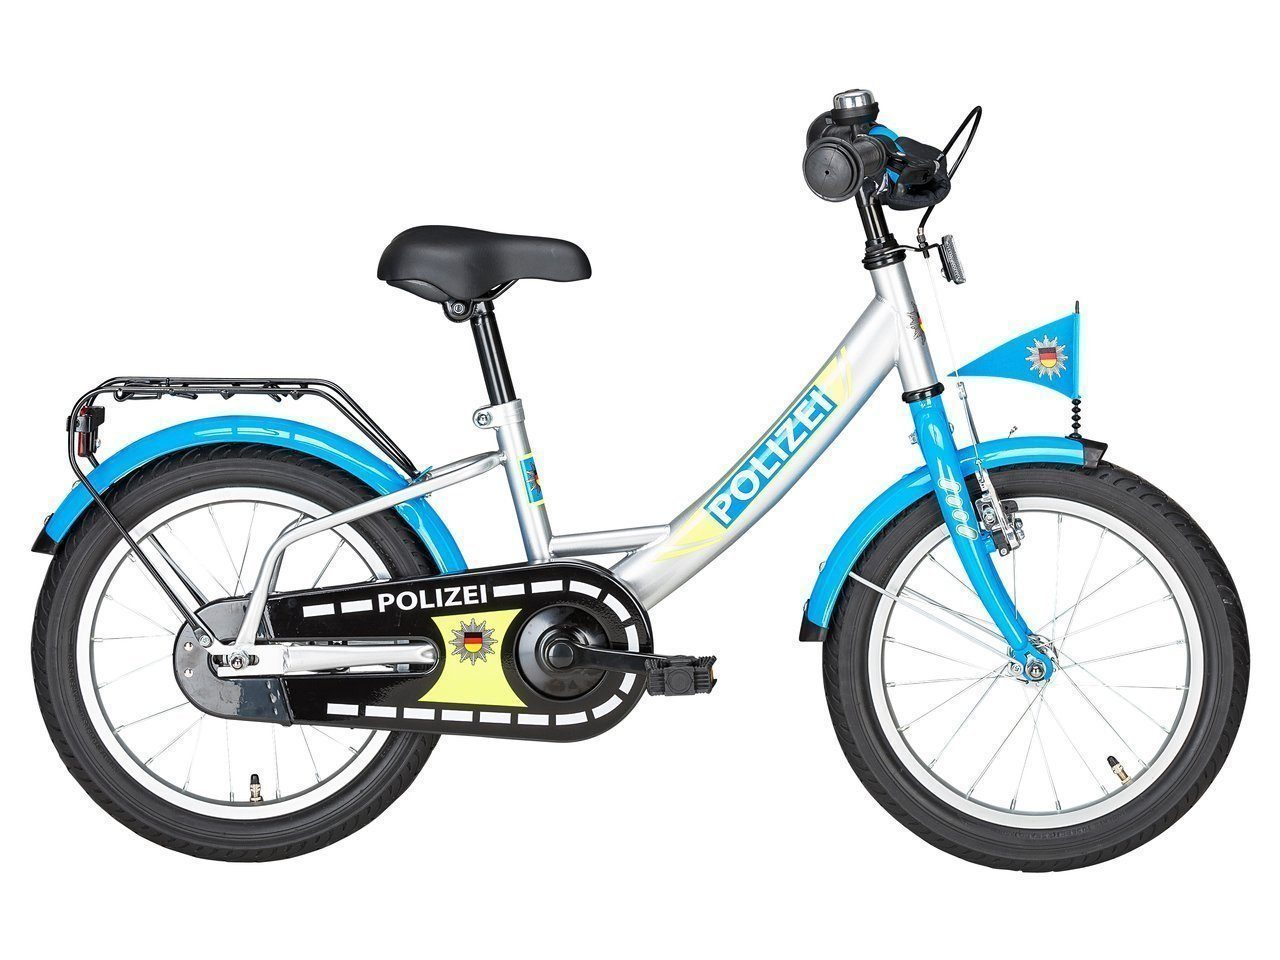 polizei kinderfahrrad kinderfahrrad 16 zoll silber blau. Black Bedroom Furniture Sets. Home Design Ideas